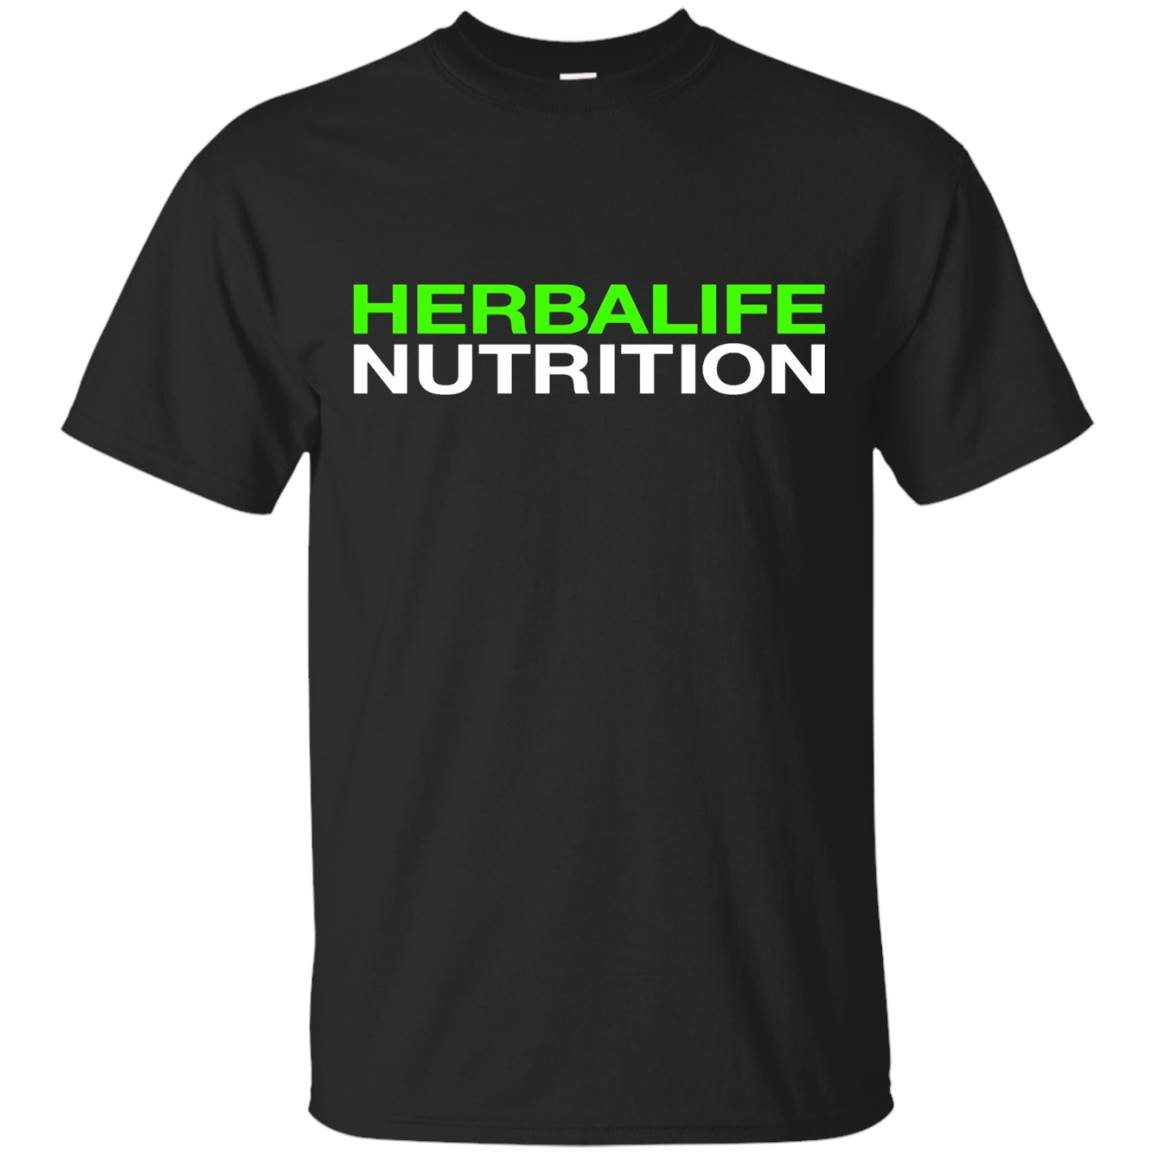 HERBALIFE NUTRITION T-SHIRT – NEON WHITE DESIGN T-Shirt